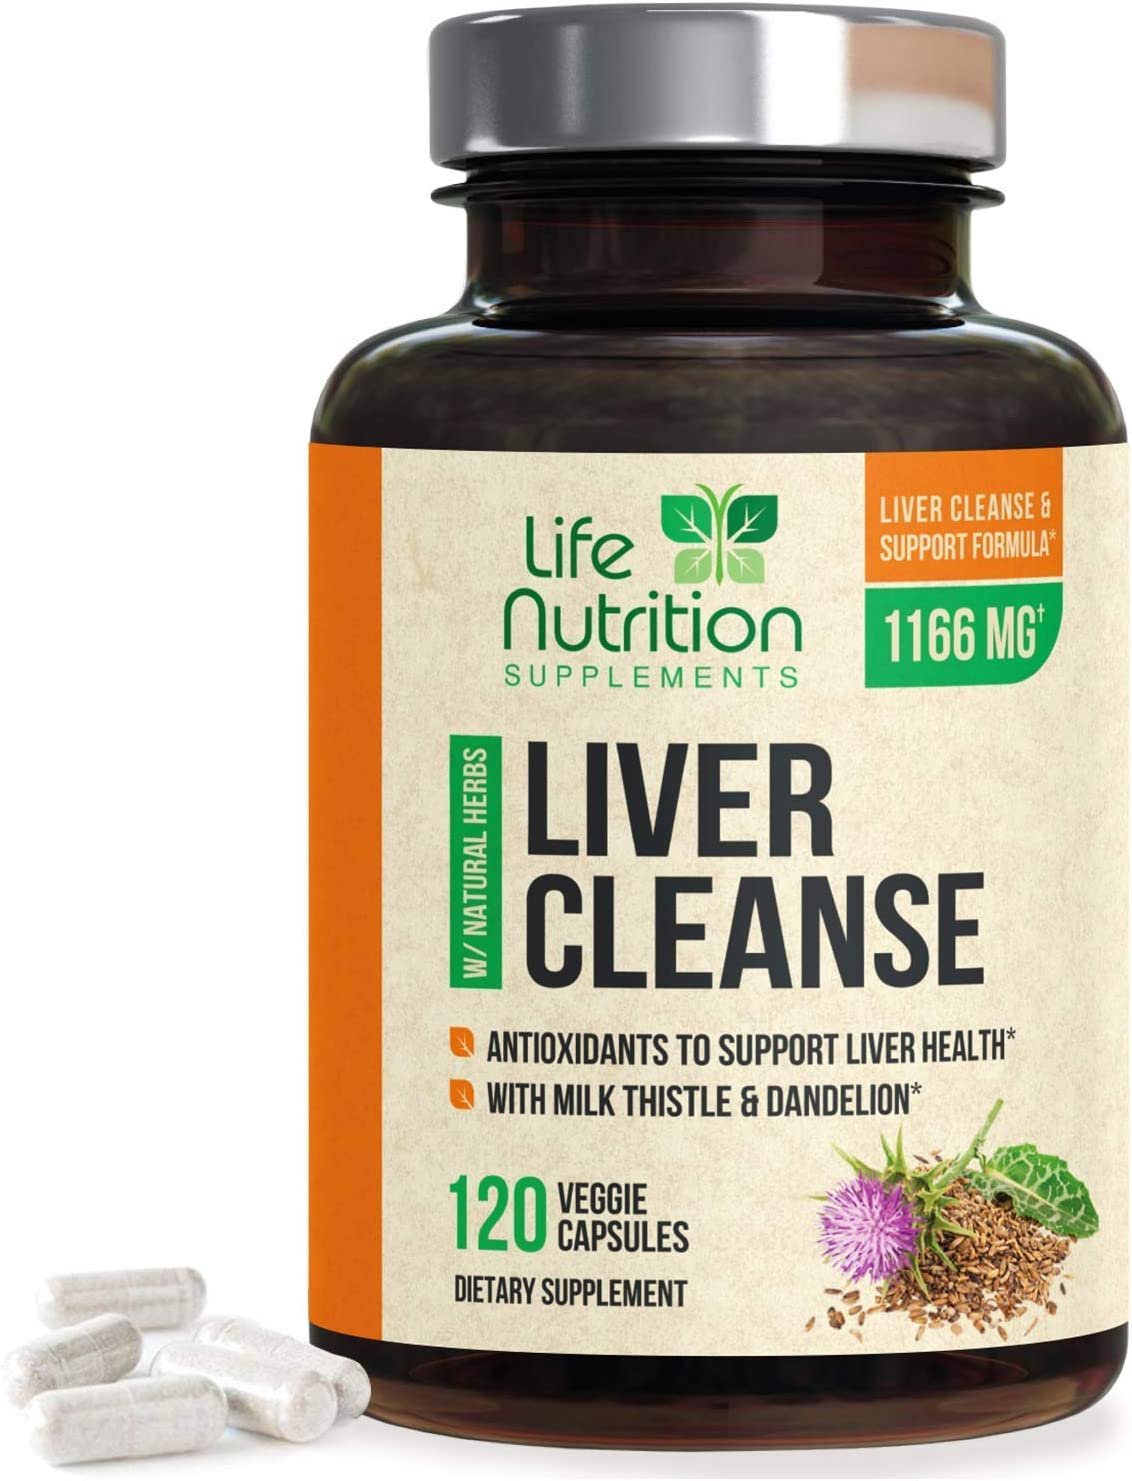 Liver Cleanse Formula 1100mg - Extra Strength 22 Herbs Support Supplement - Made in USA - Best Vegan Milk Thistle Extract, Silymarin, Beet, Artichoke, Dandelion, Chicory Non-GMO - 120 Capsules